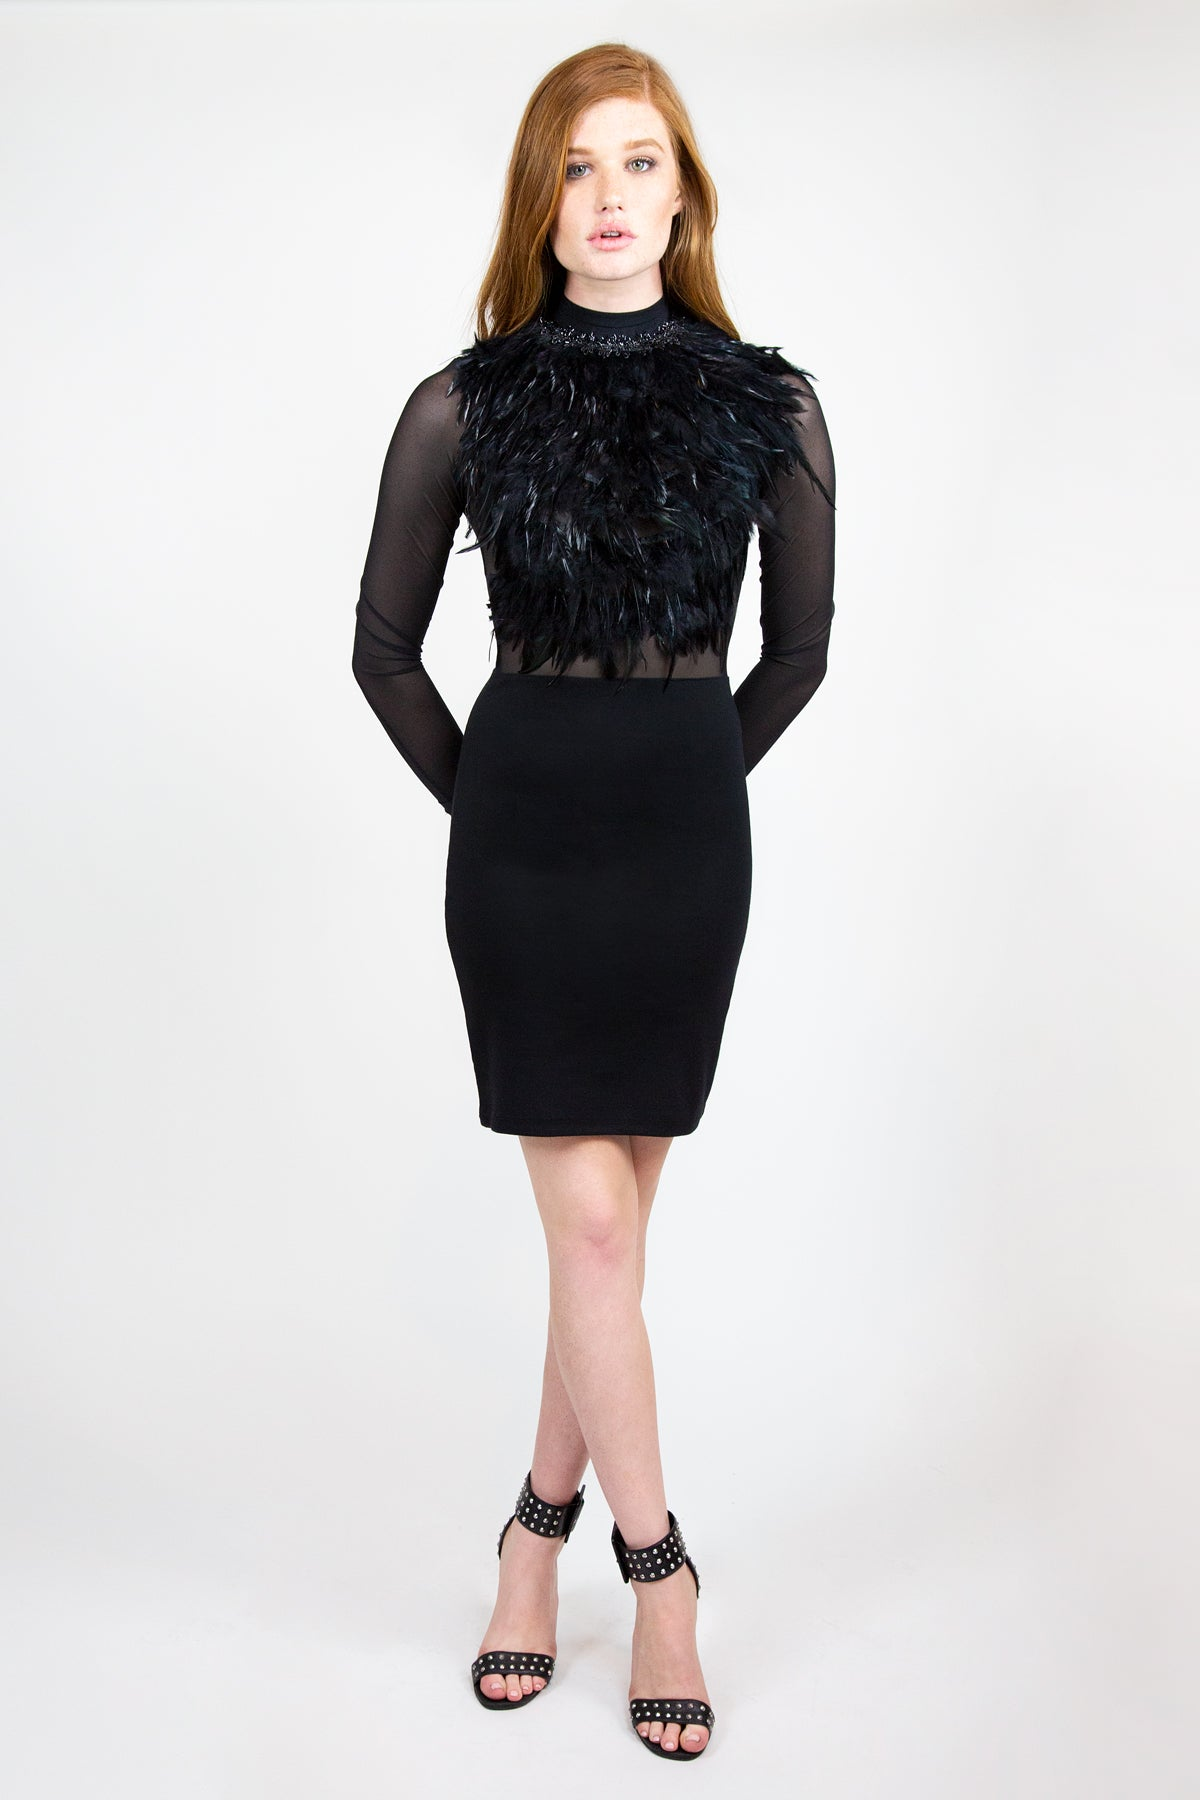 Sheer Feathered Dress